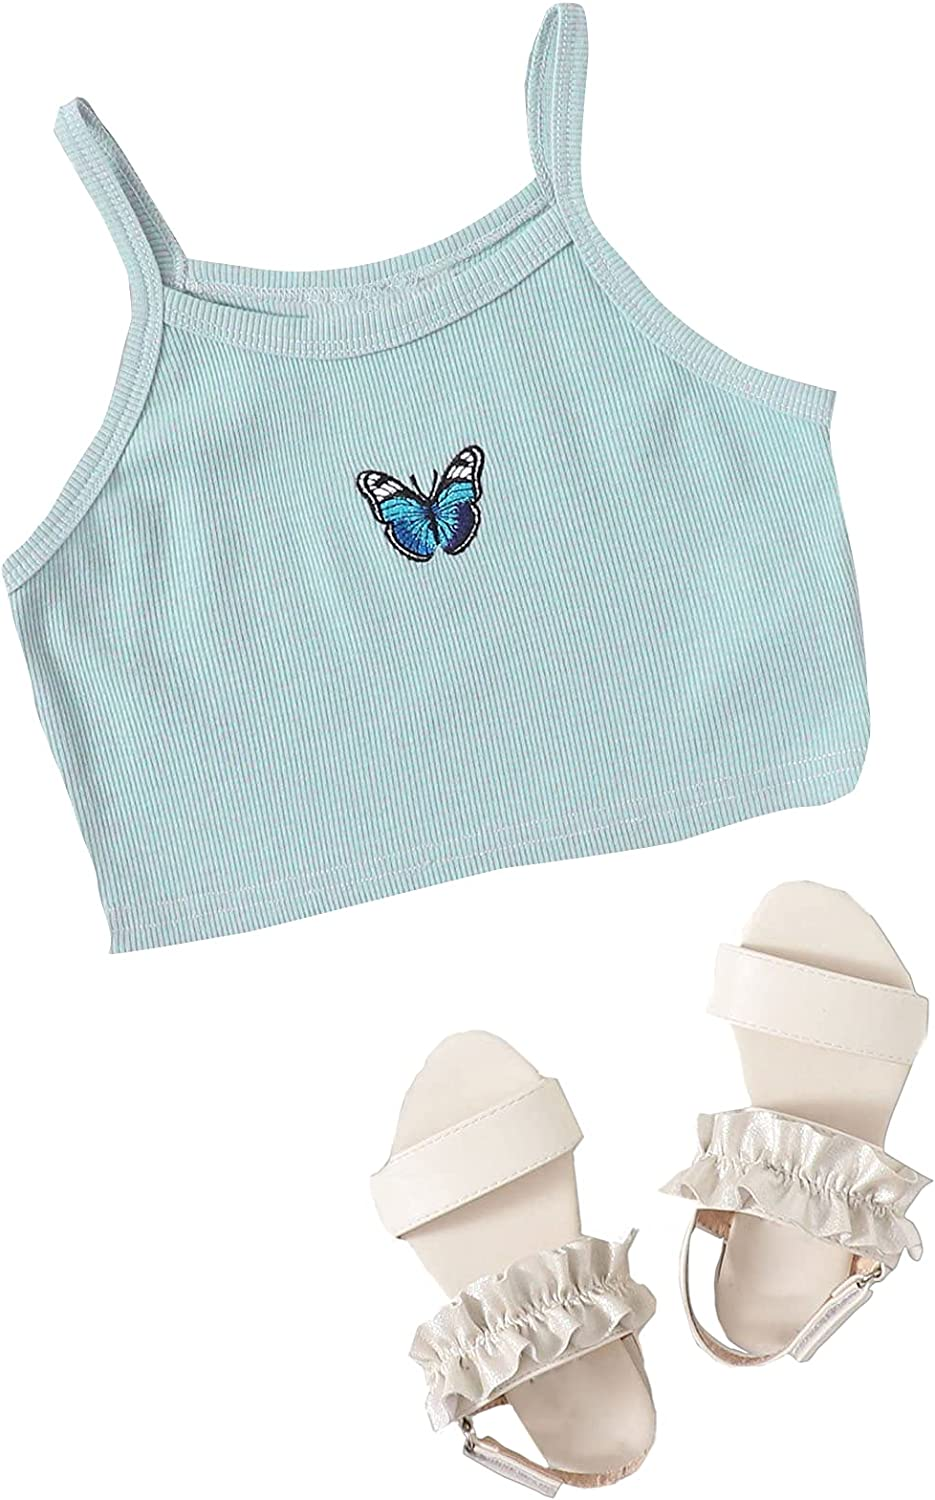 Romwe Girl's Summer Clothes Butterfly Pattern Crop Tank Tops